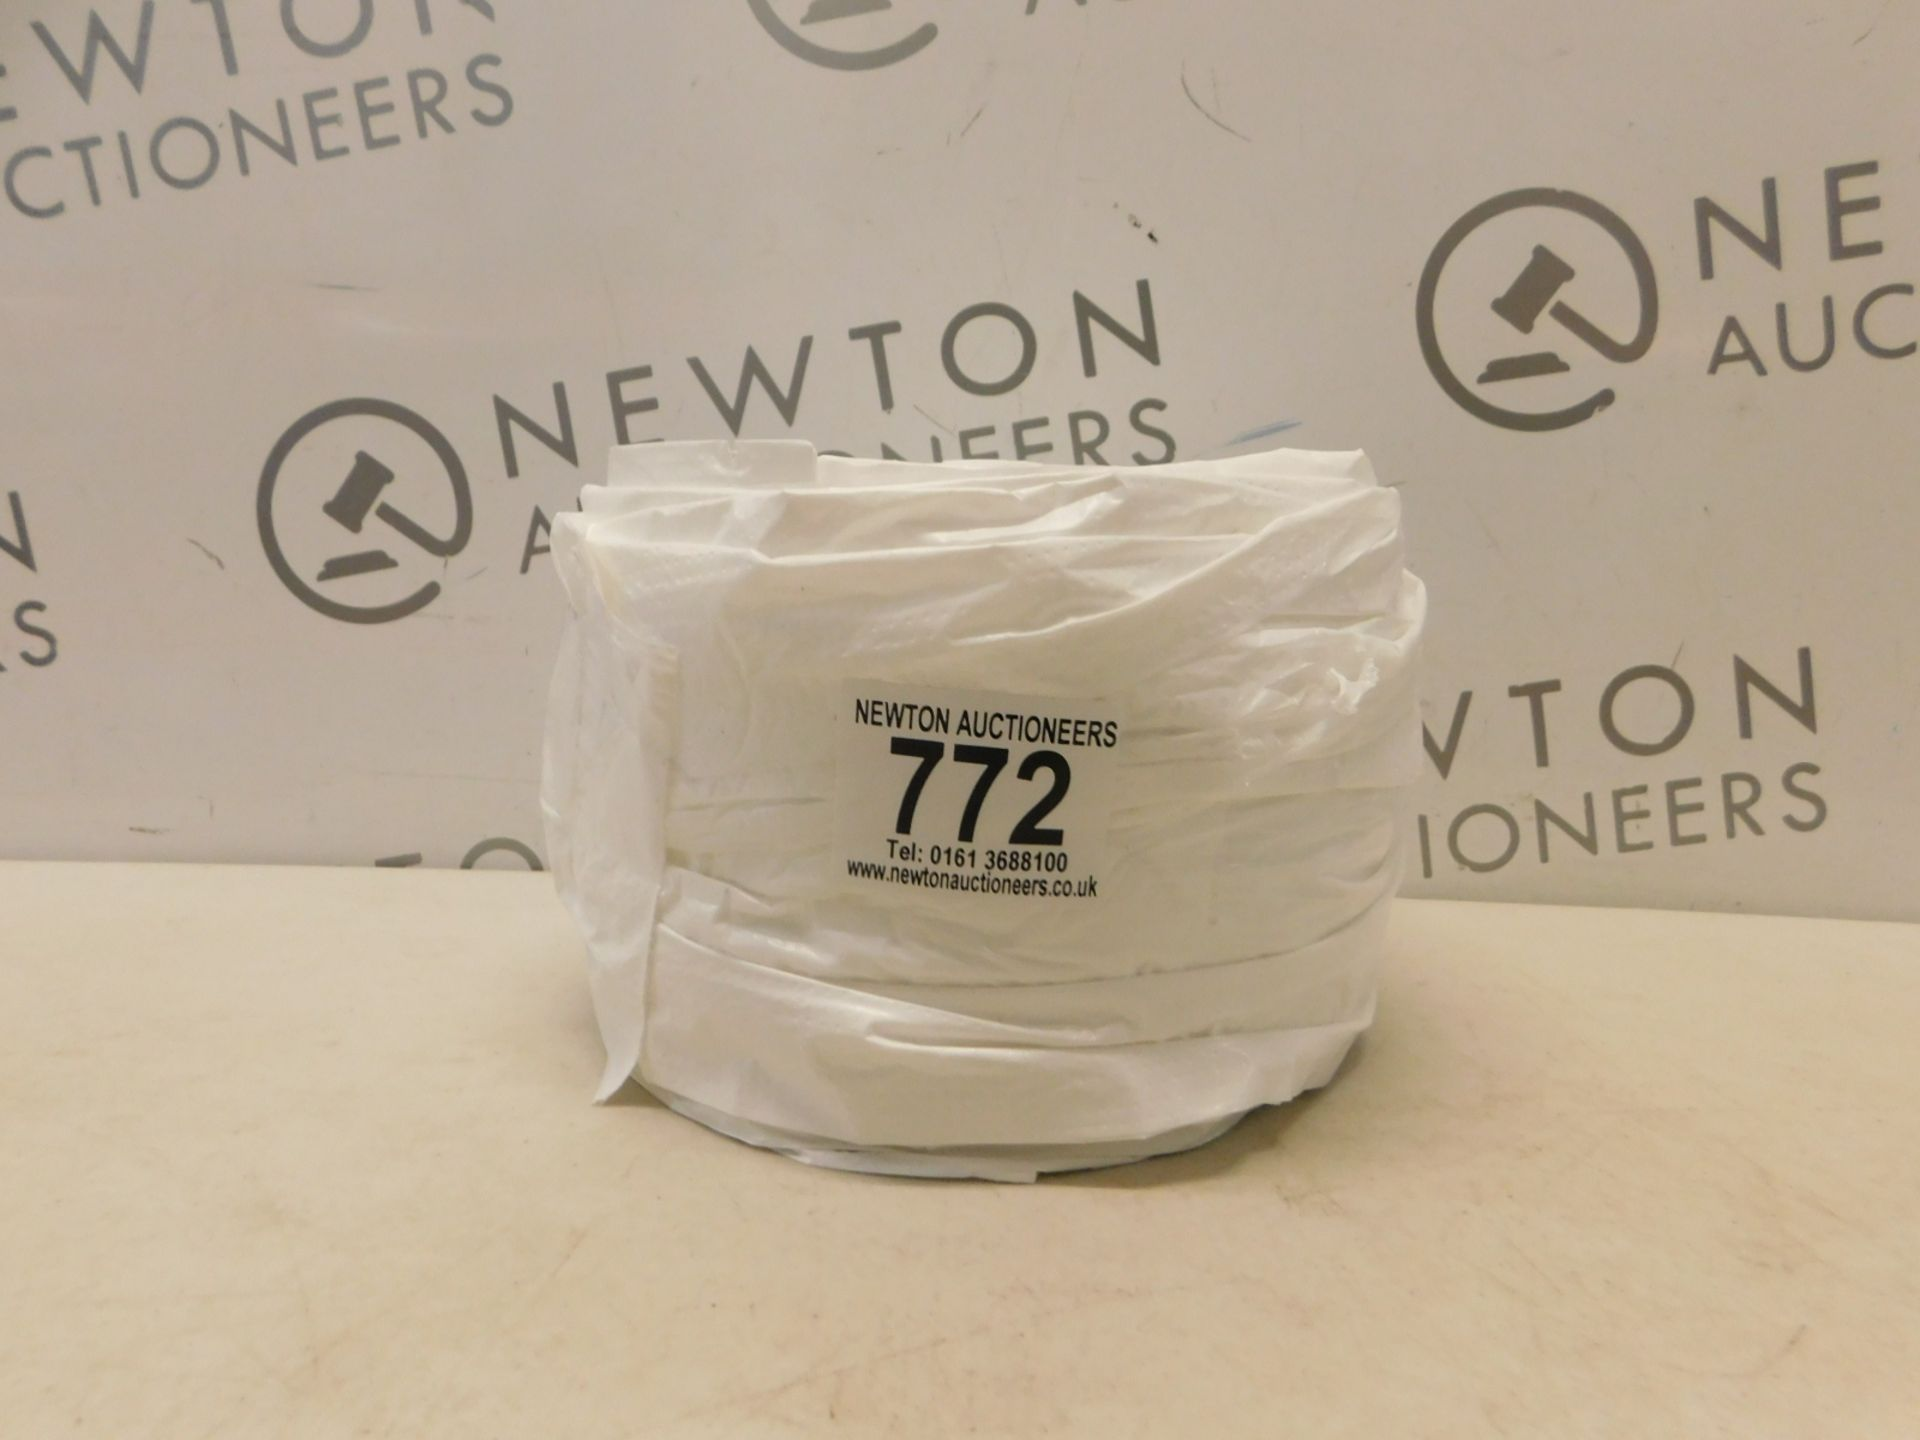 Lot 772 - 1 LARGE ROLL OF WHITE KITCHEN BAGS RRP £12.99